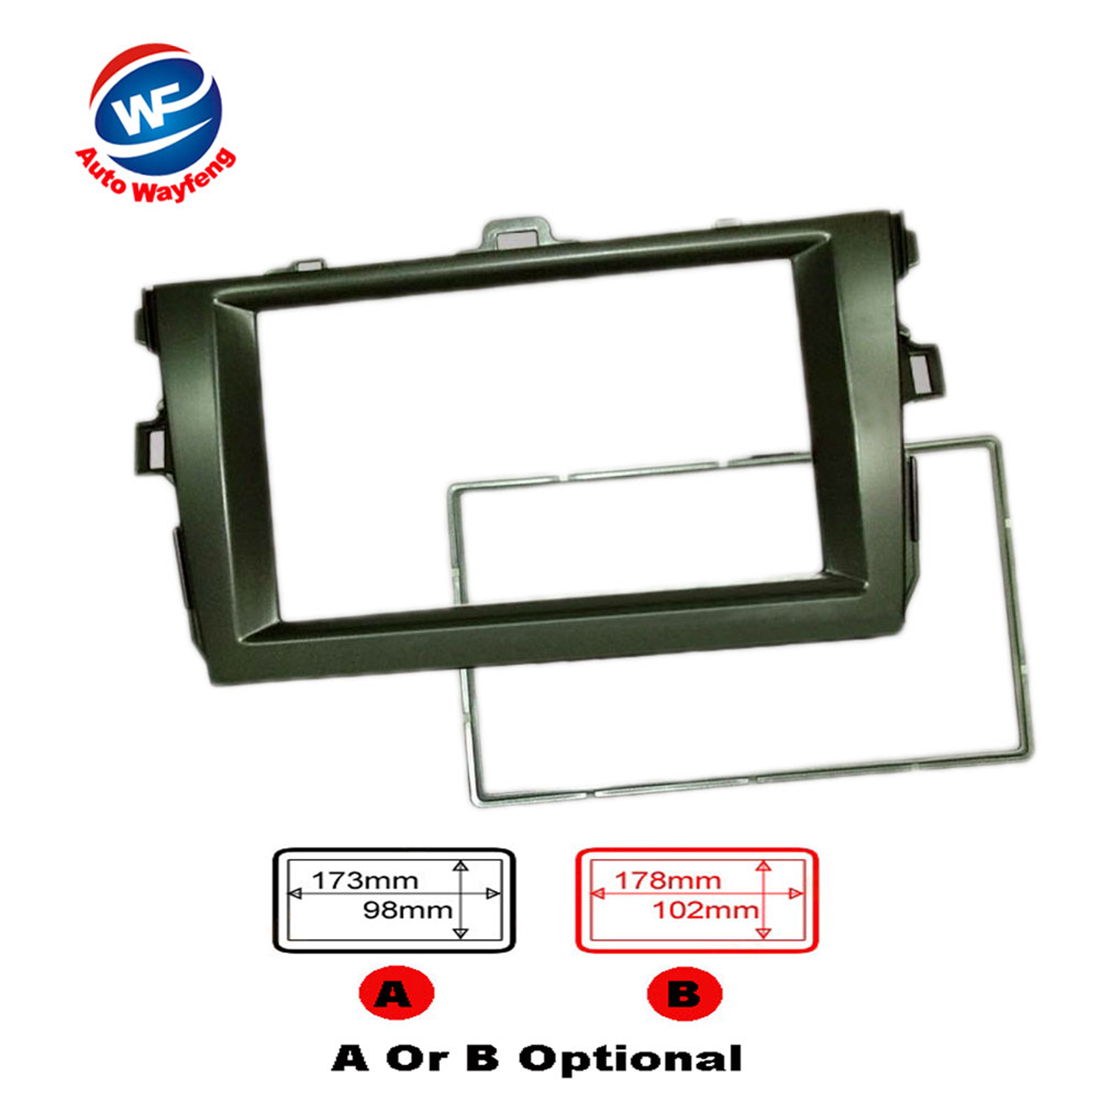 ᐂ2DIN Car dash Radio Fascia for Toyota Corolla 2008-2010 ...